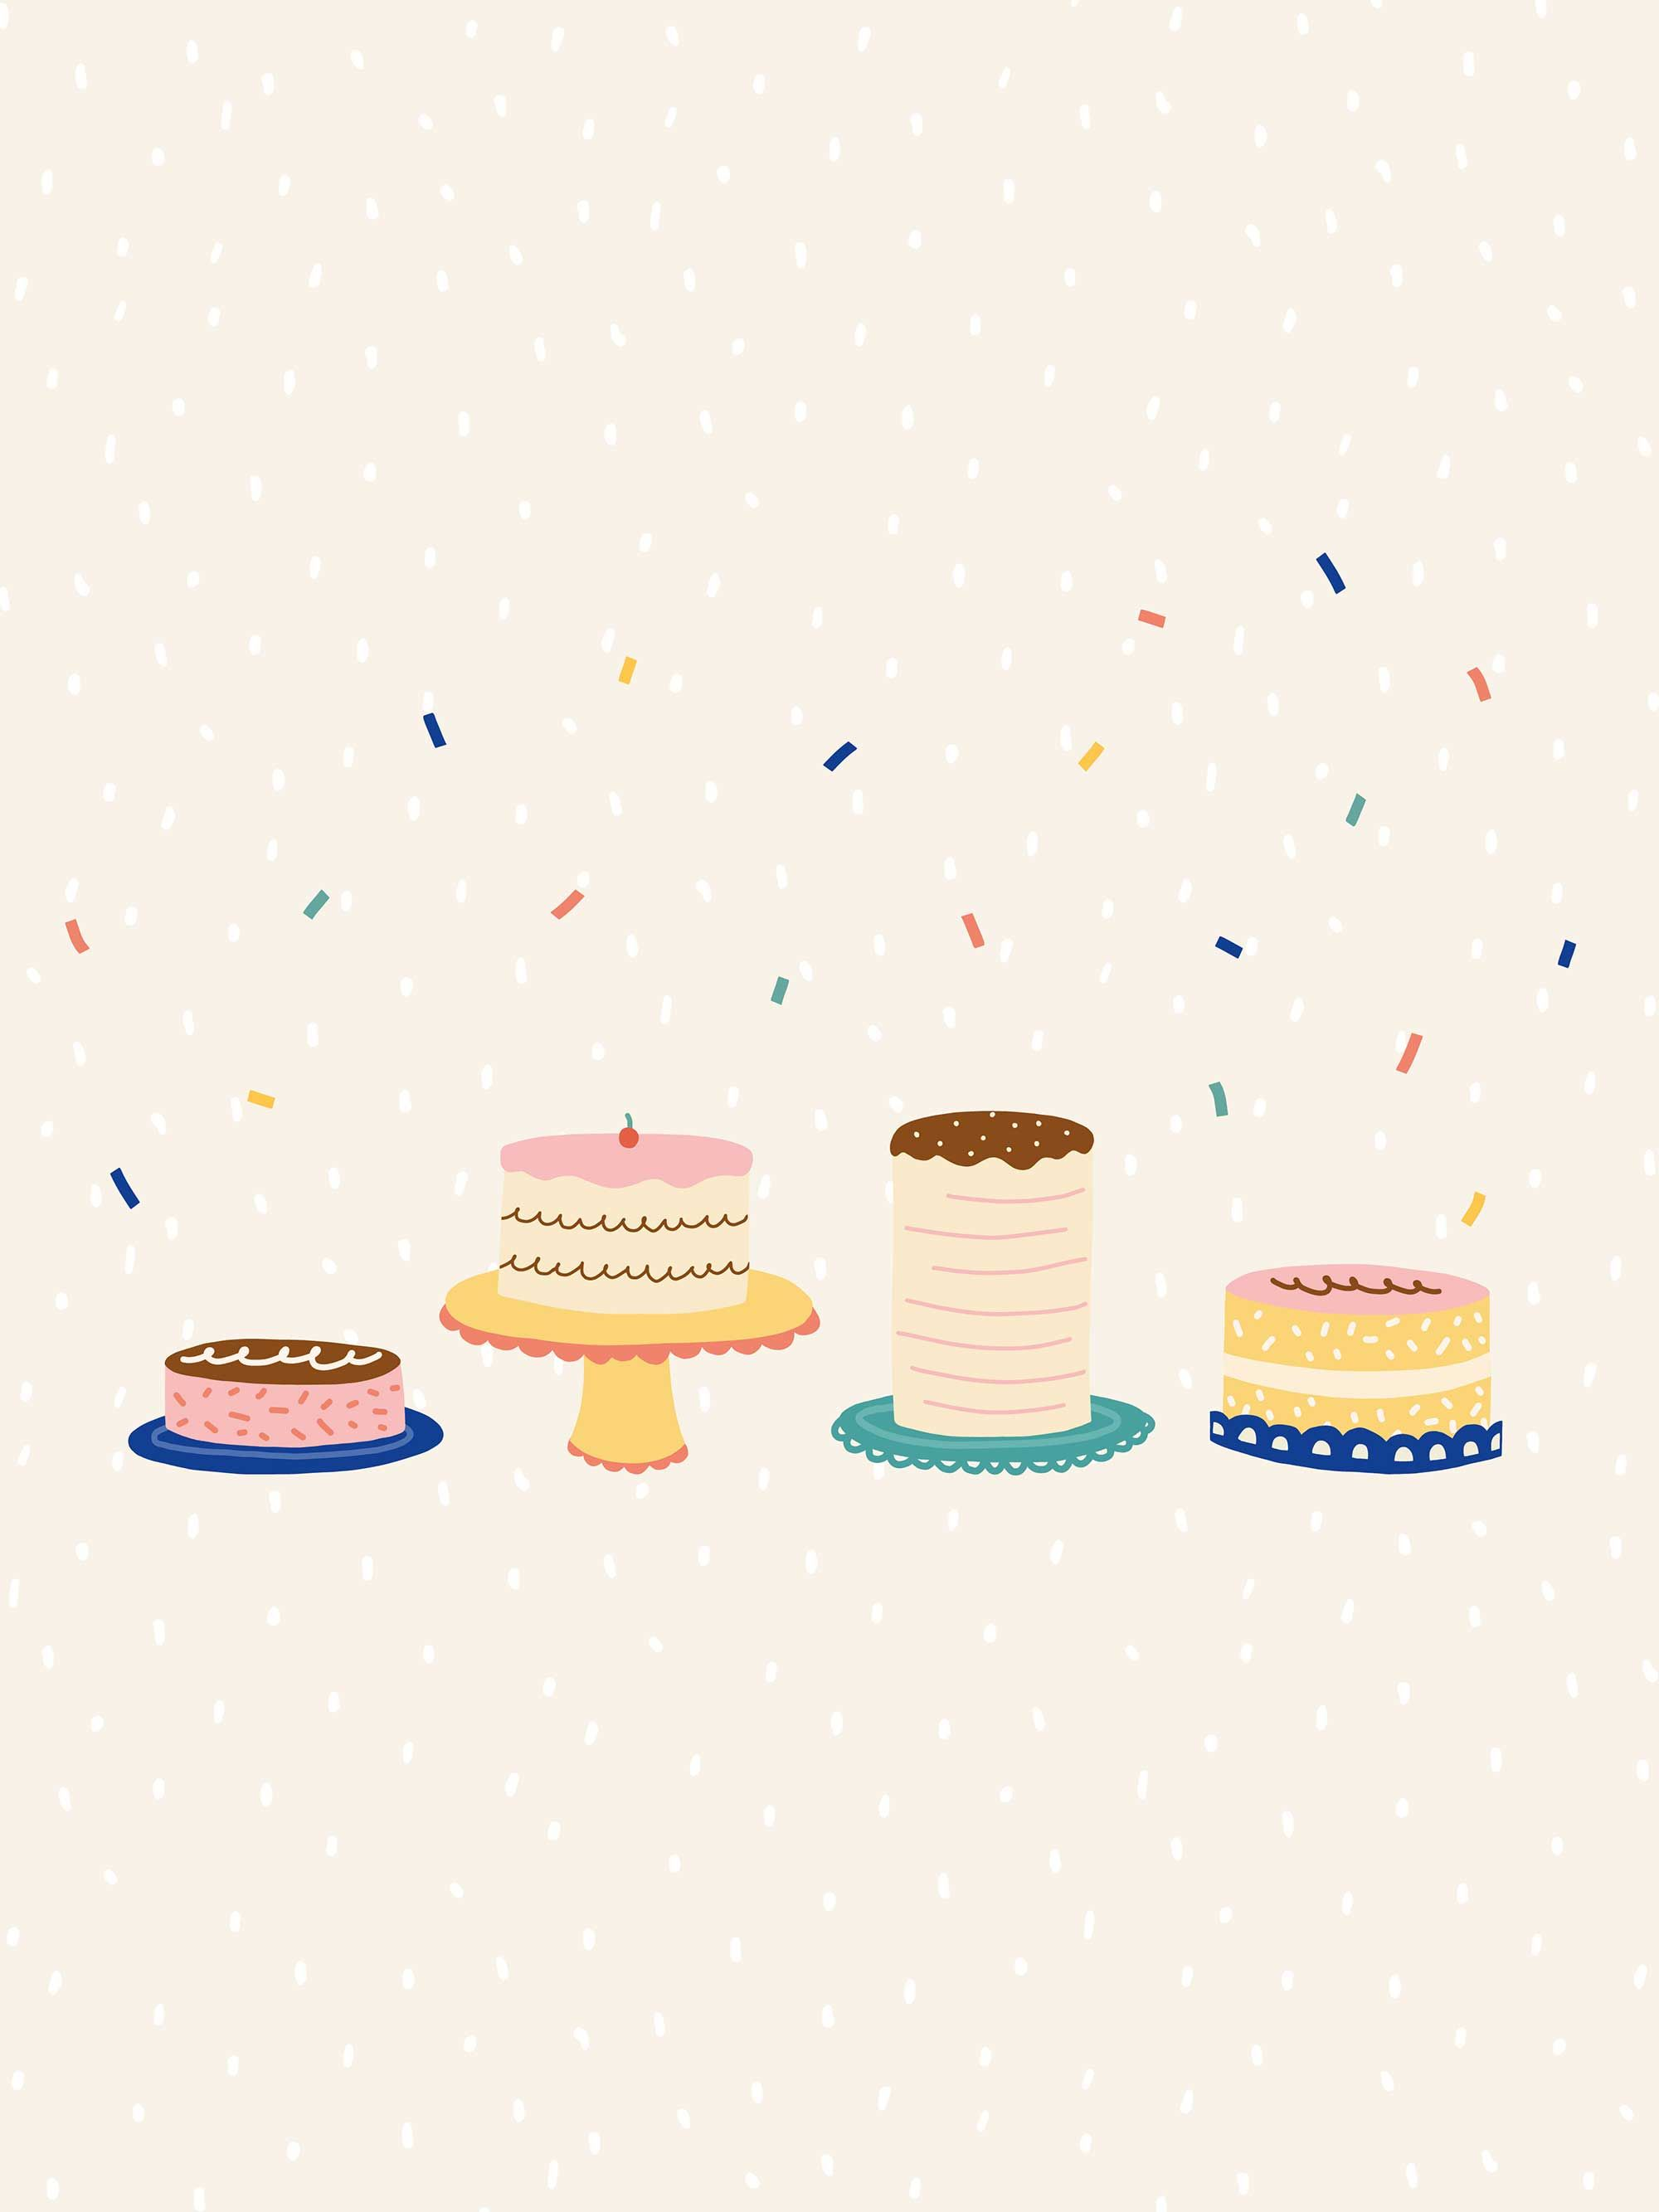 Cake Desktop Tablet And Phone Wallpaper Cake Wallpaper Phone Wallpaper Tablet Wallpaper